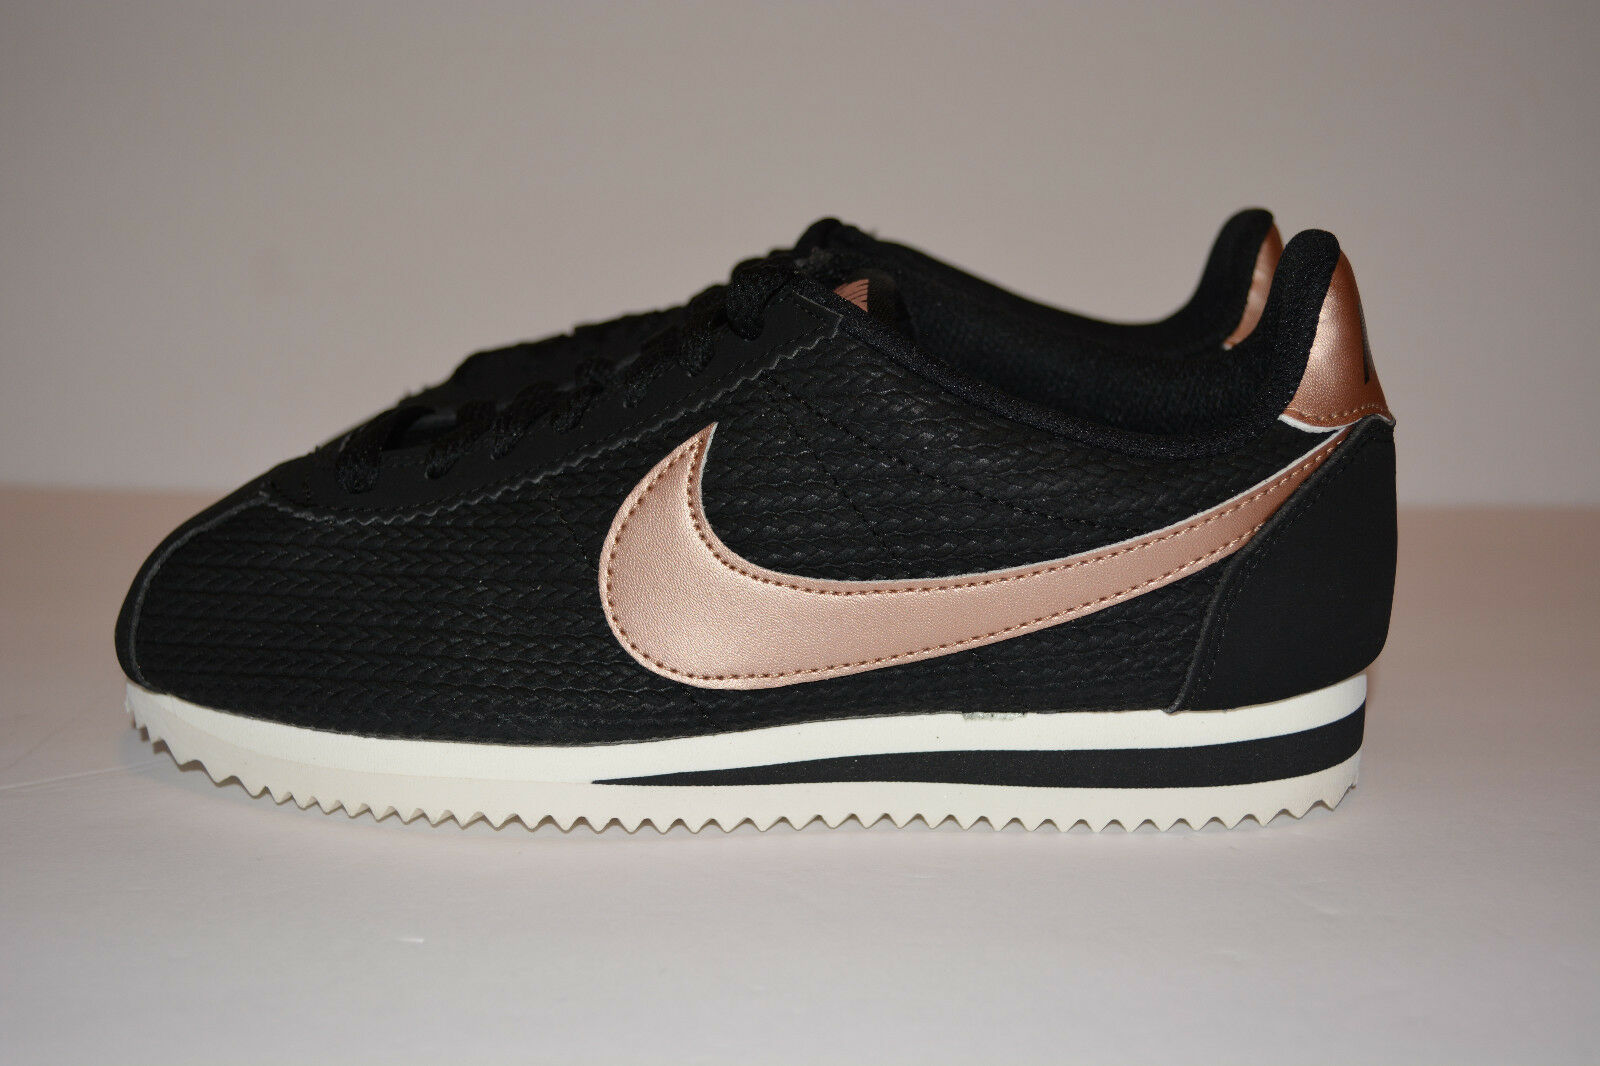 Nike Women's Classic Cortez Leather Lux Sneakers Black [Size 5.5] 861660-002